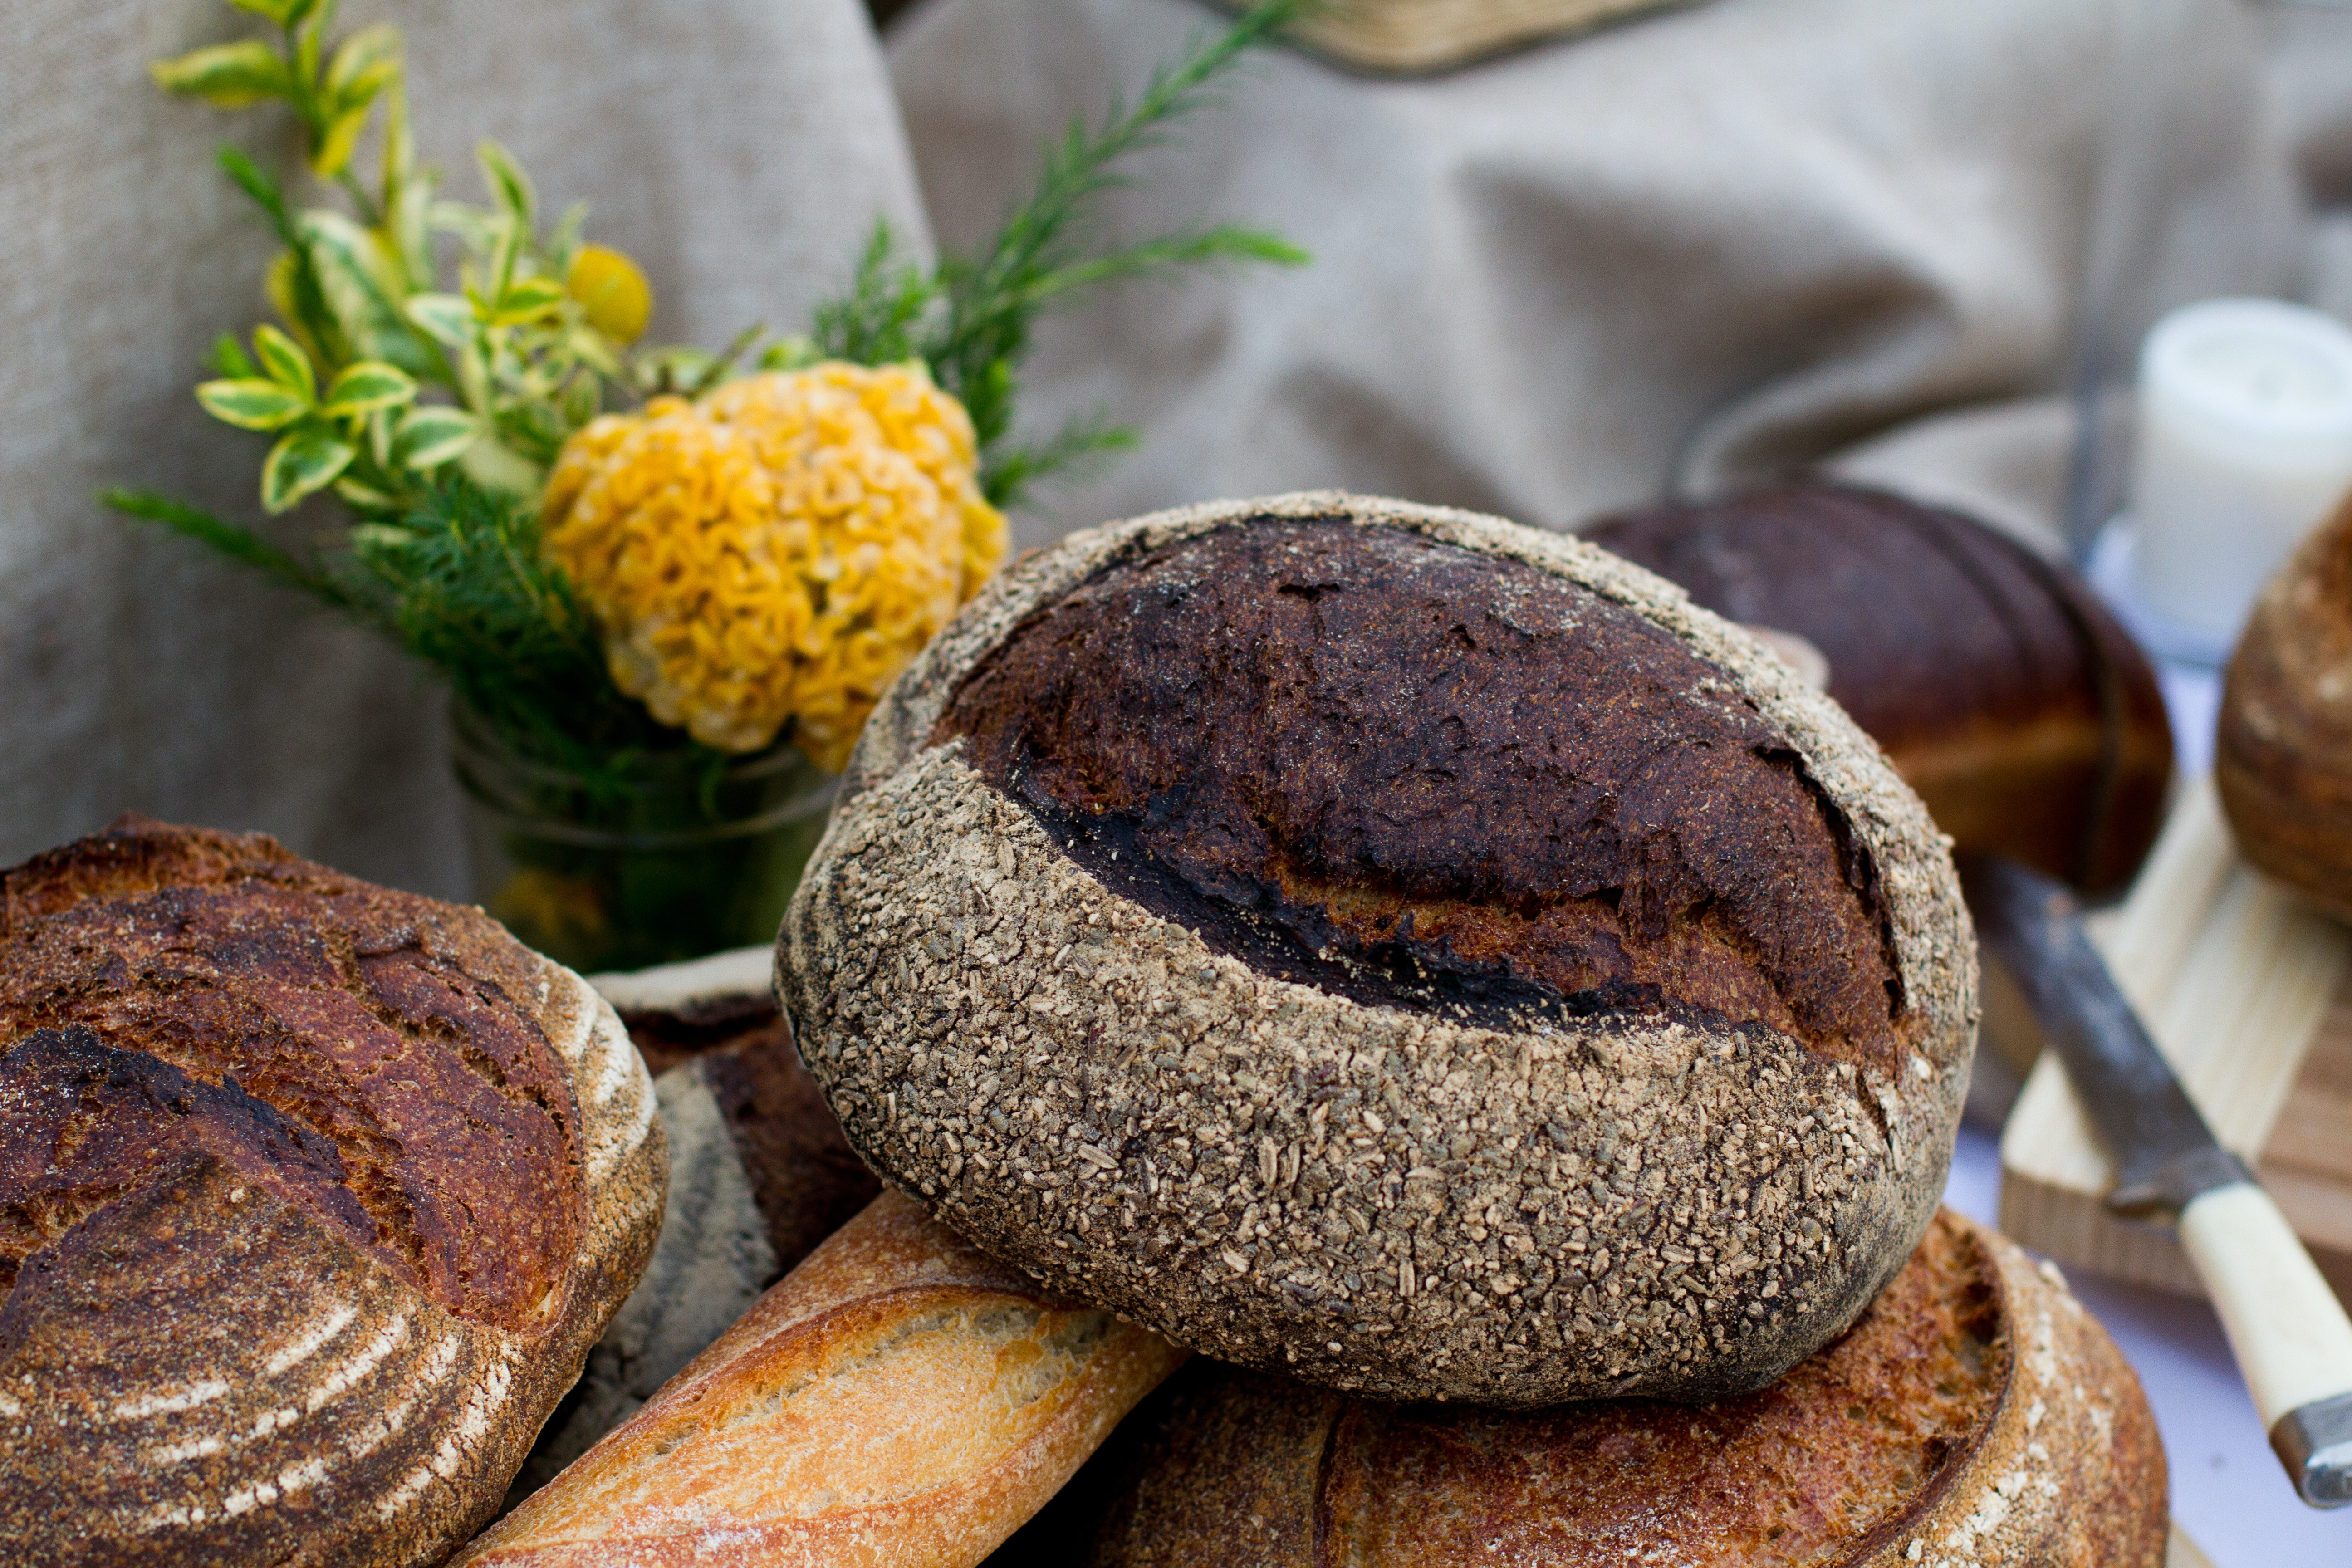 Loaves of artisanal bread and baguettes in Venice